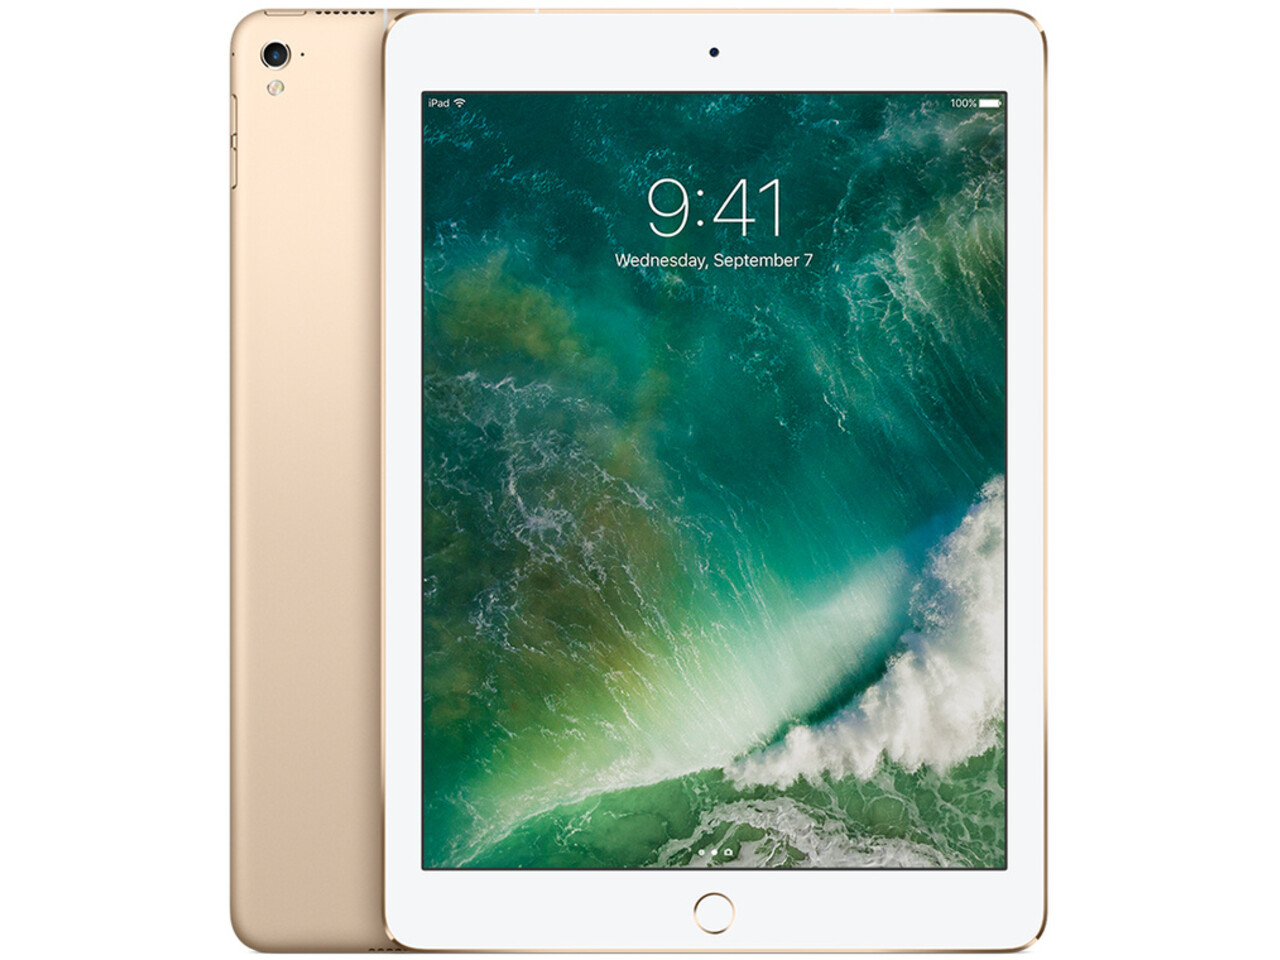 ipad pro 1 9 inch cellular gold